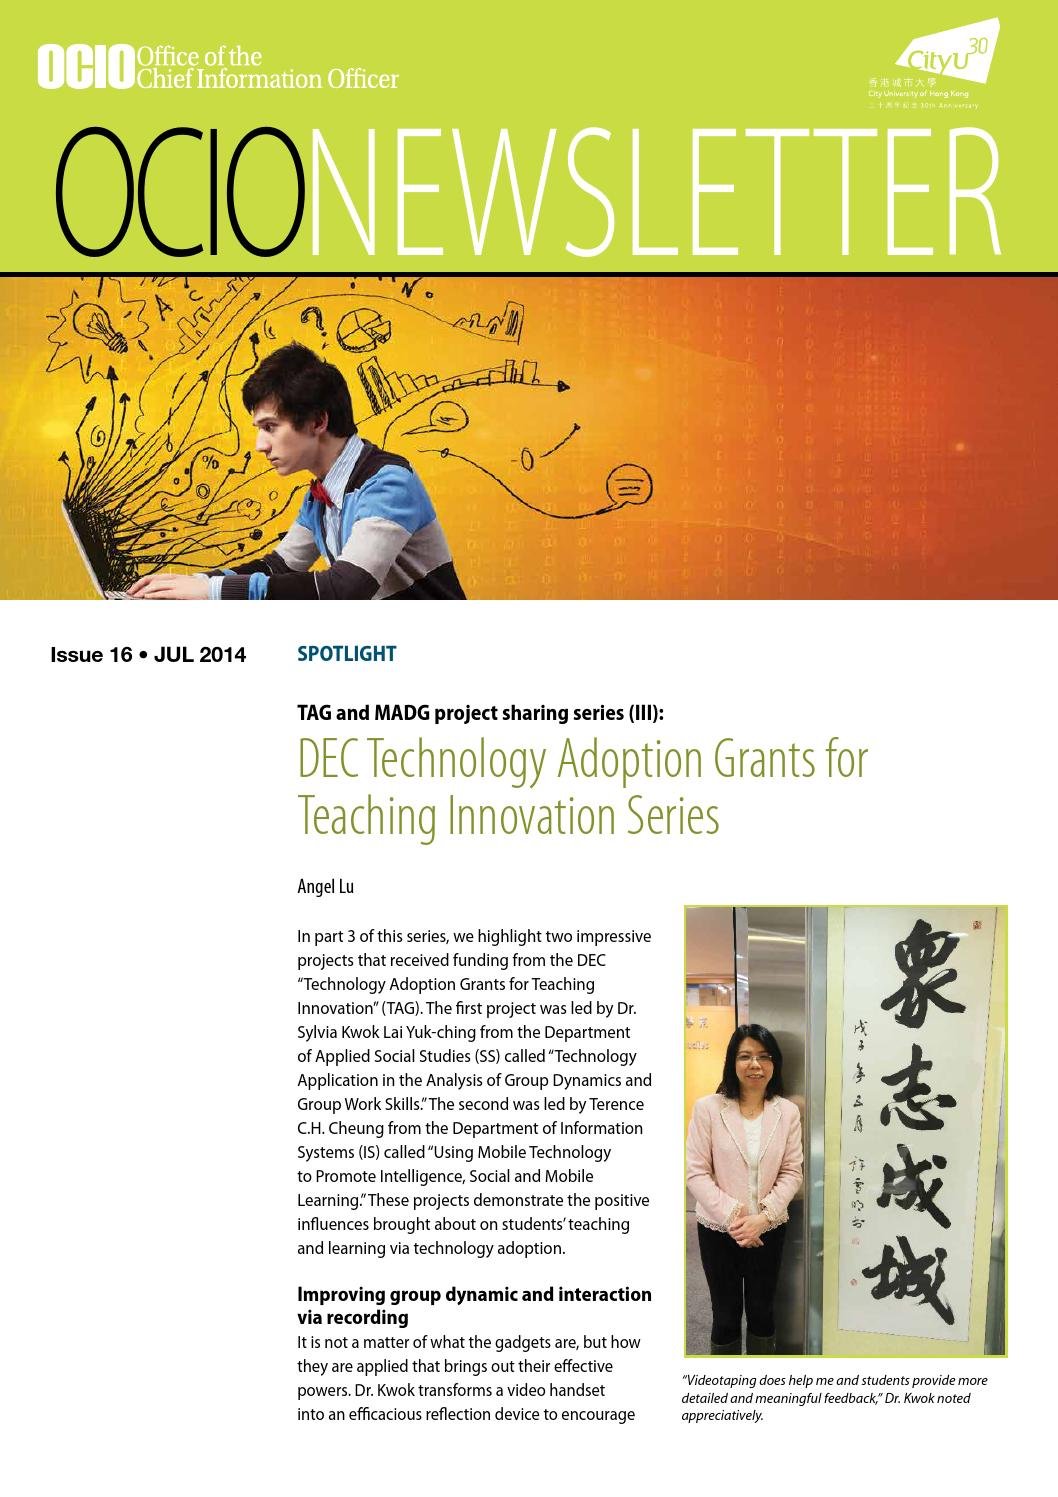 OCIO Newsletter issue 16 by City University of Hong Kong - issuu